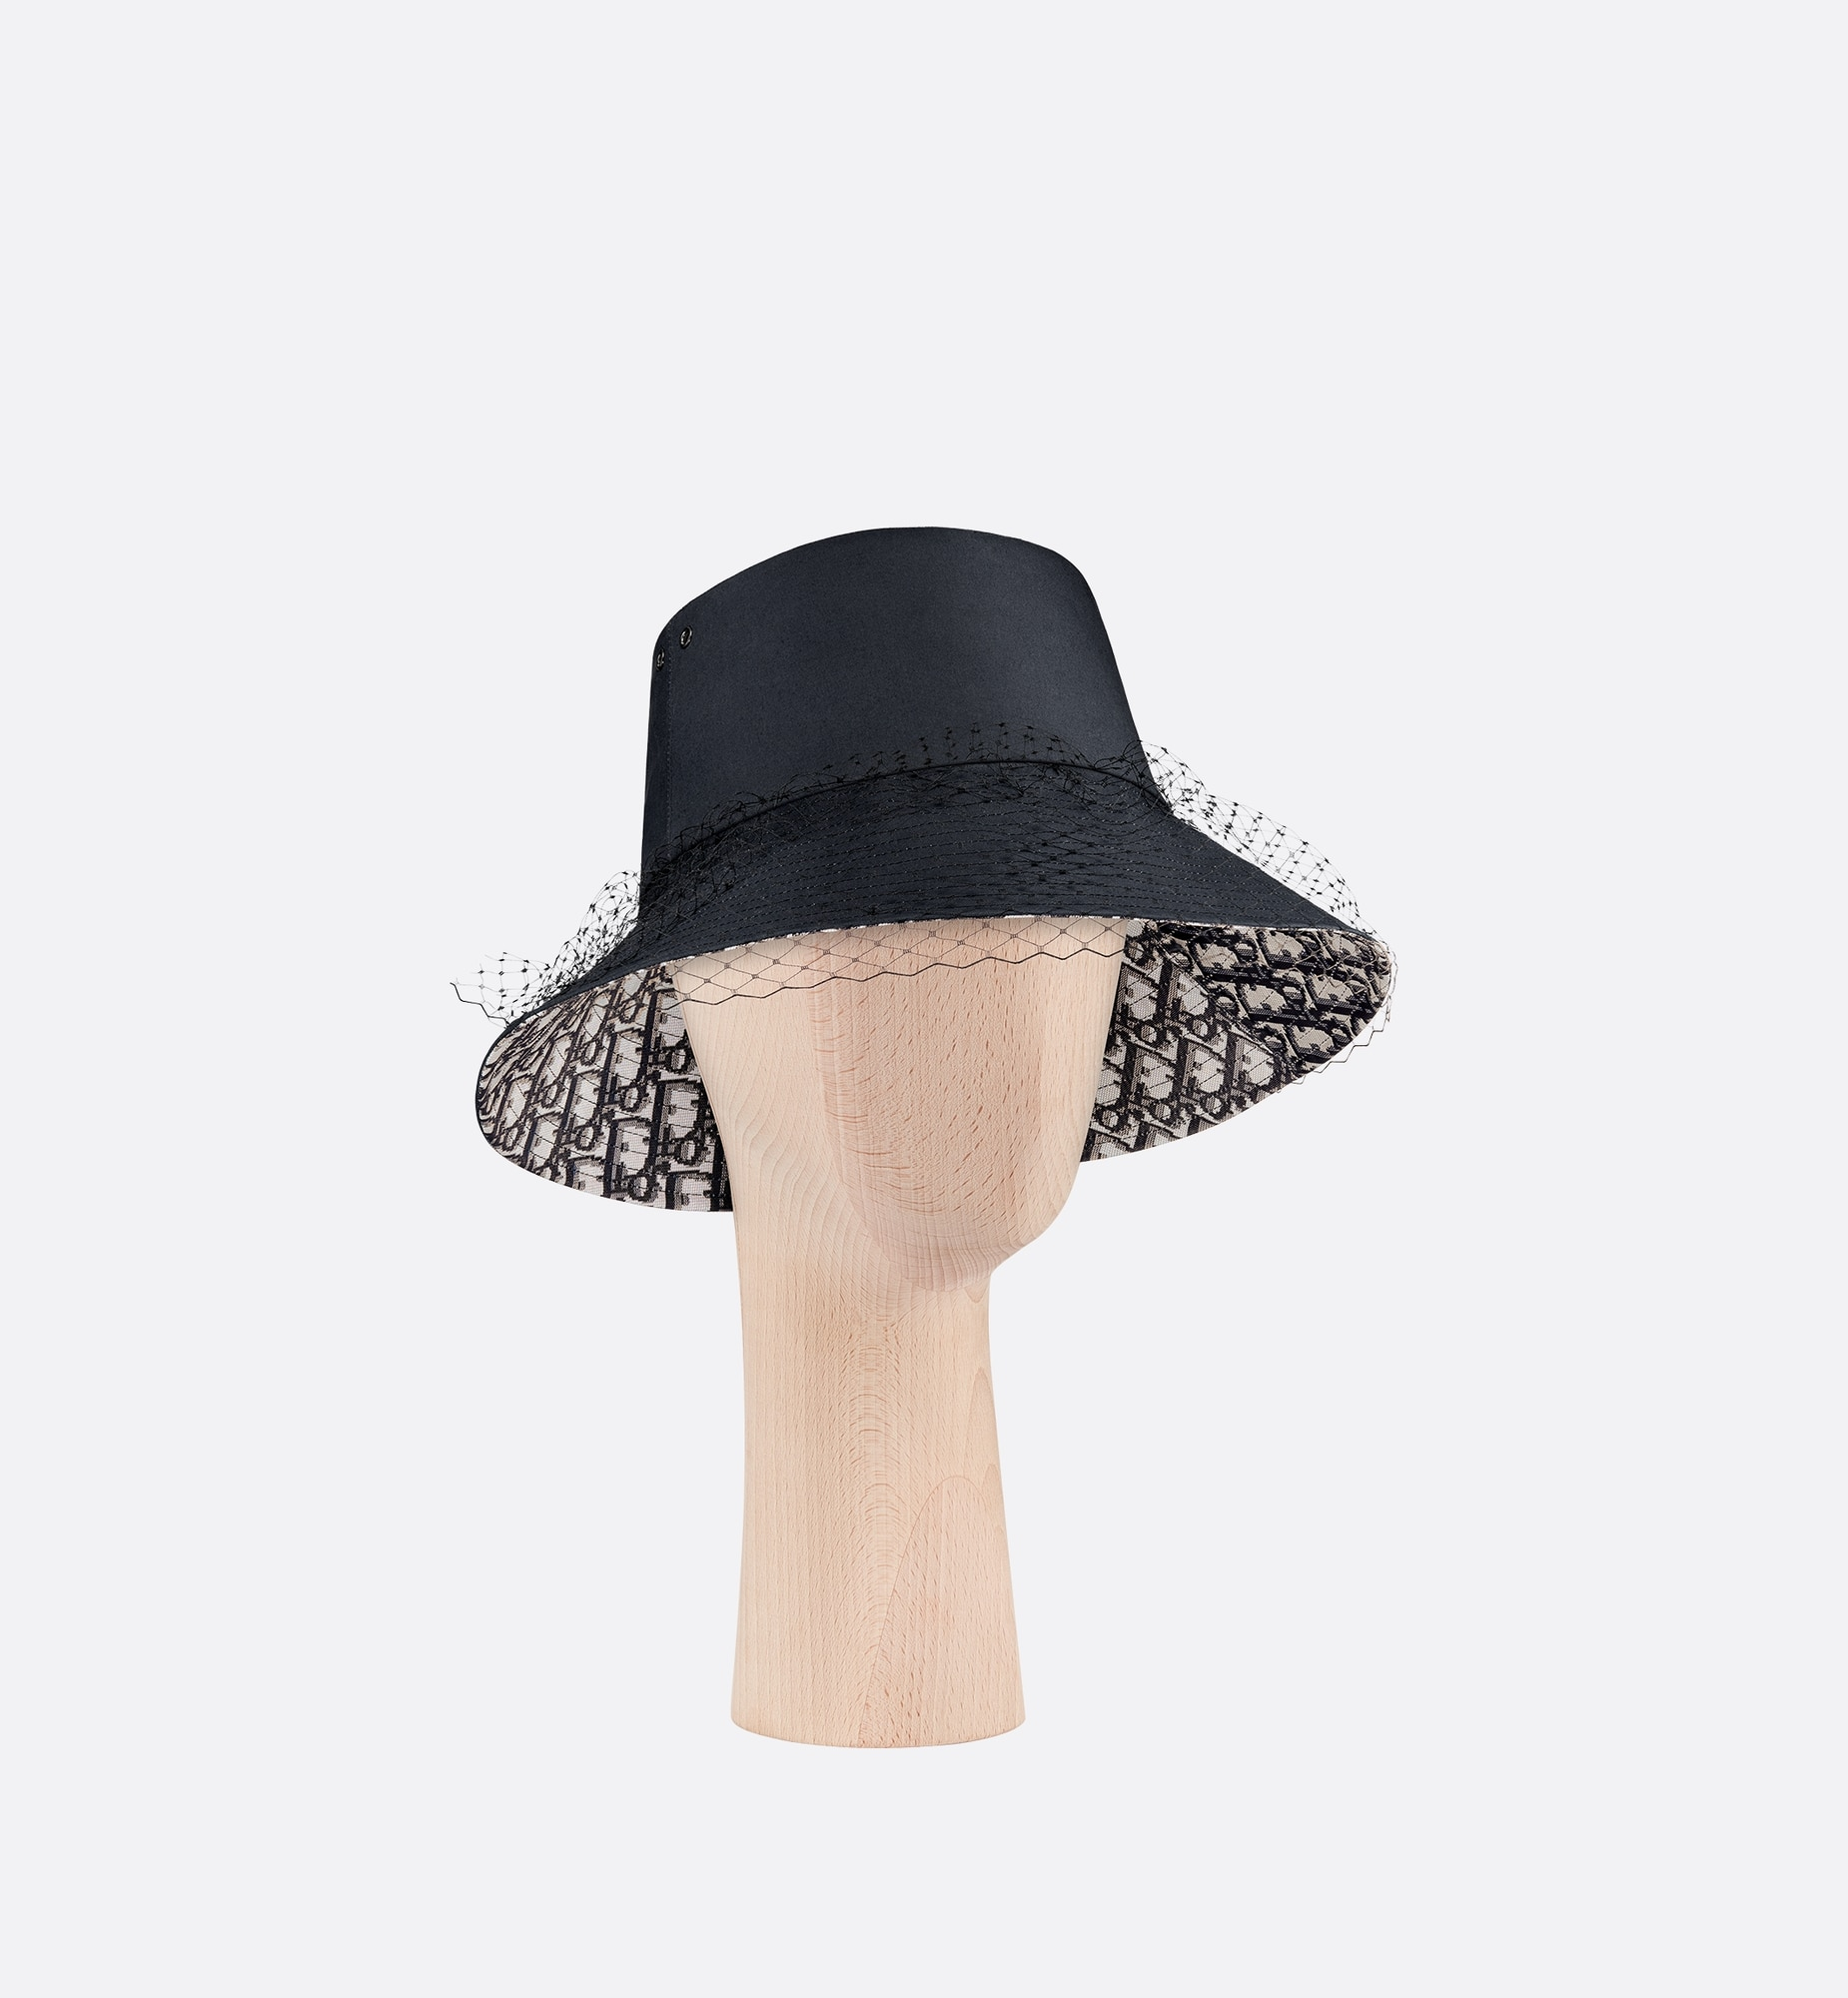 Teddy-D Large Brim Bucket Hat with Veil Three quarter closed view